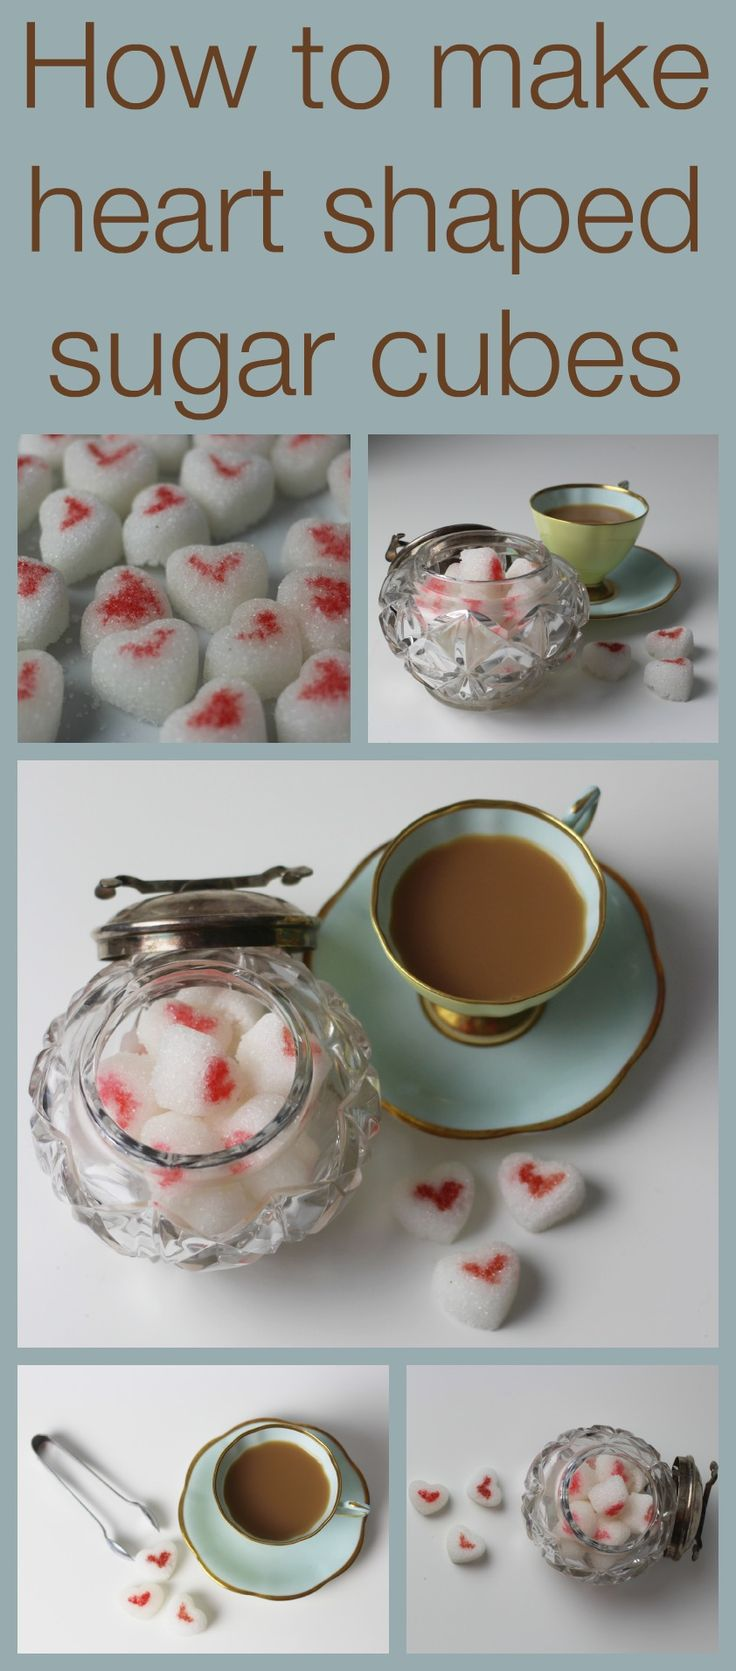 How to make heart shaped sugar cubes - Mum In The Madhouse